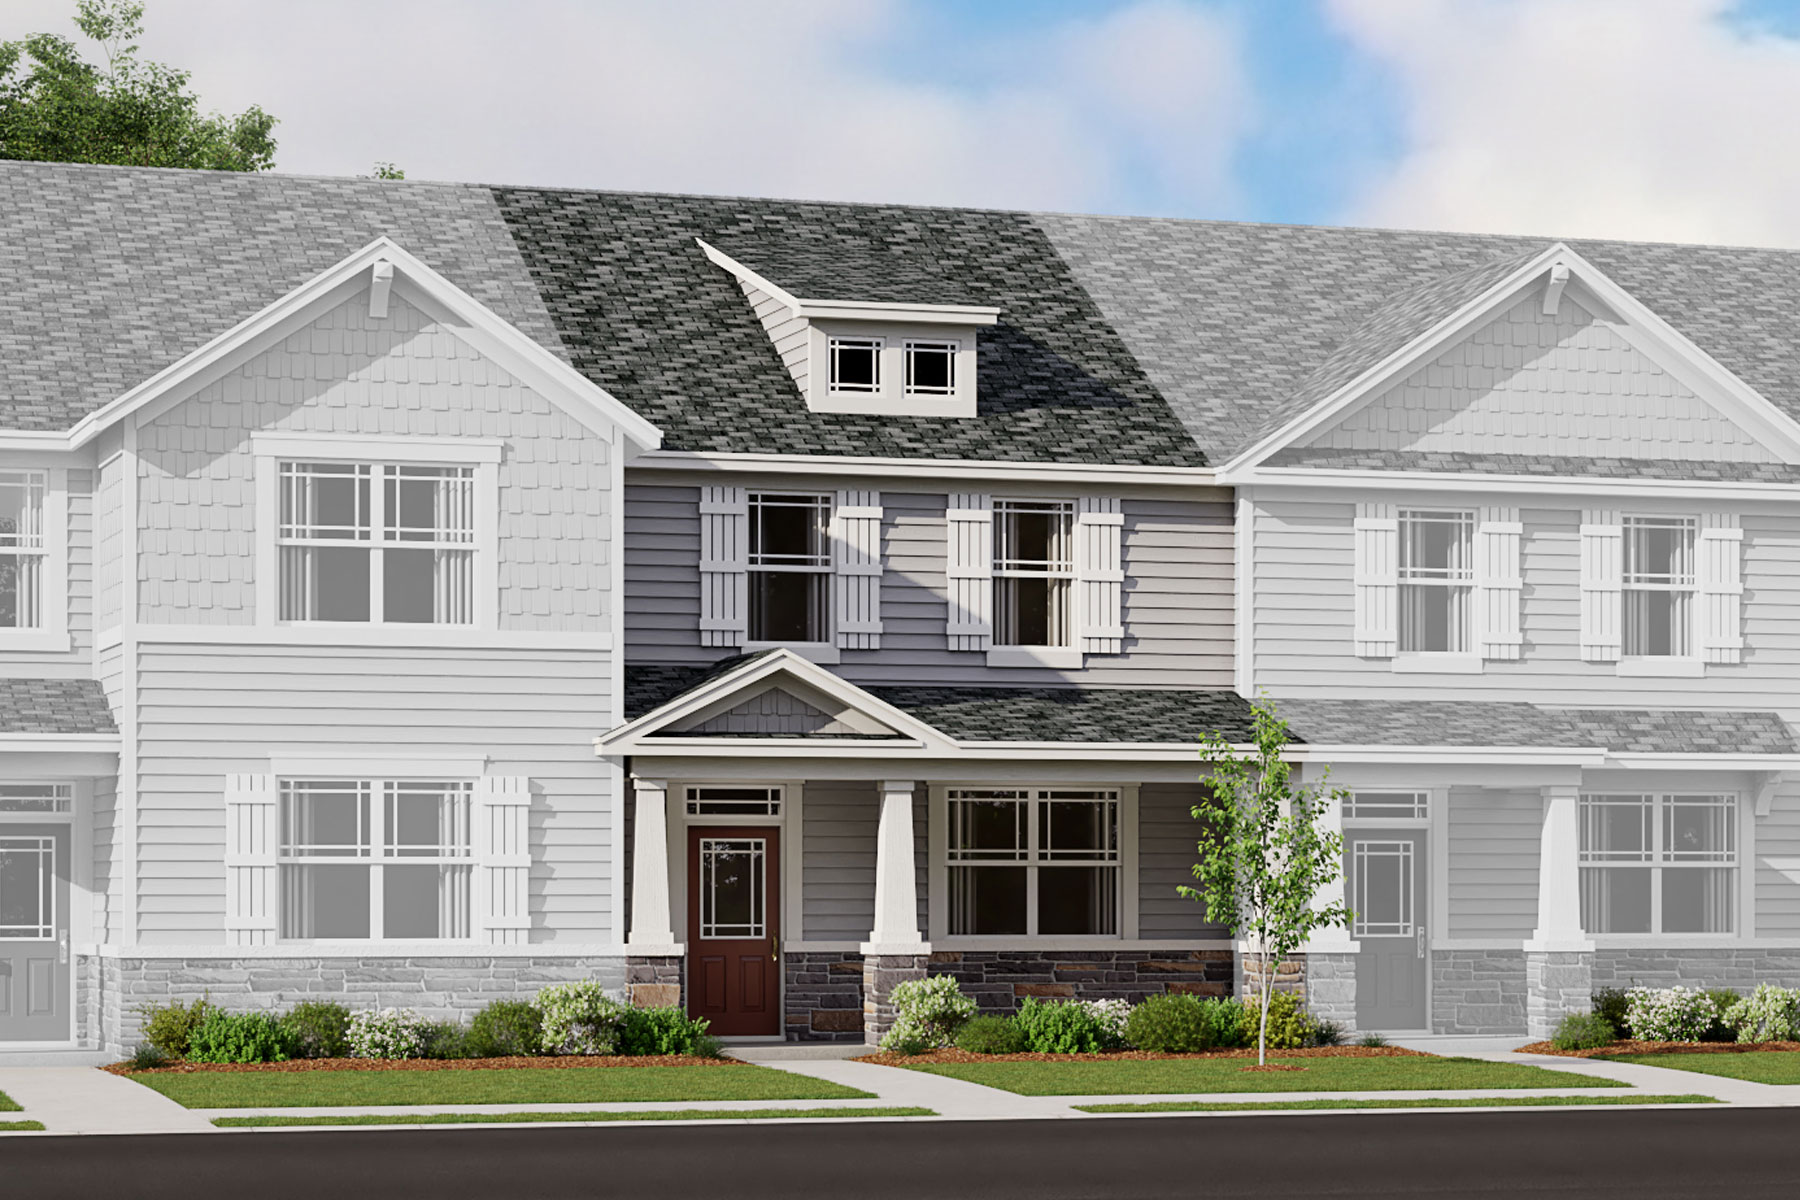 Murray Plan TownHomes at Porter's Row in Charlotte North Carolina by Mattamy Homes